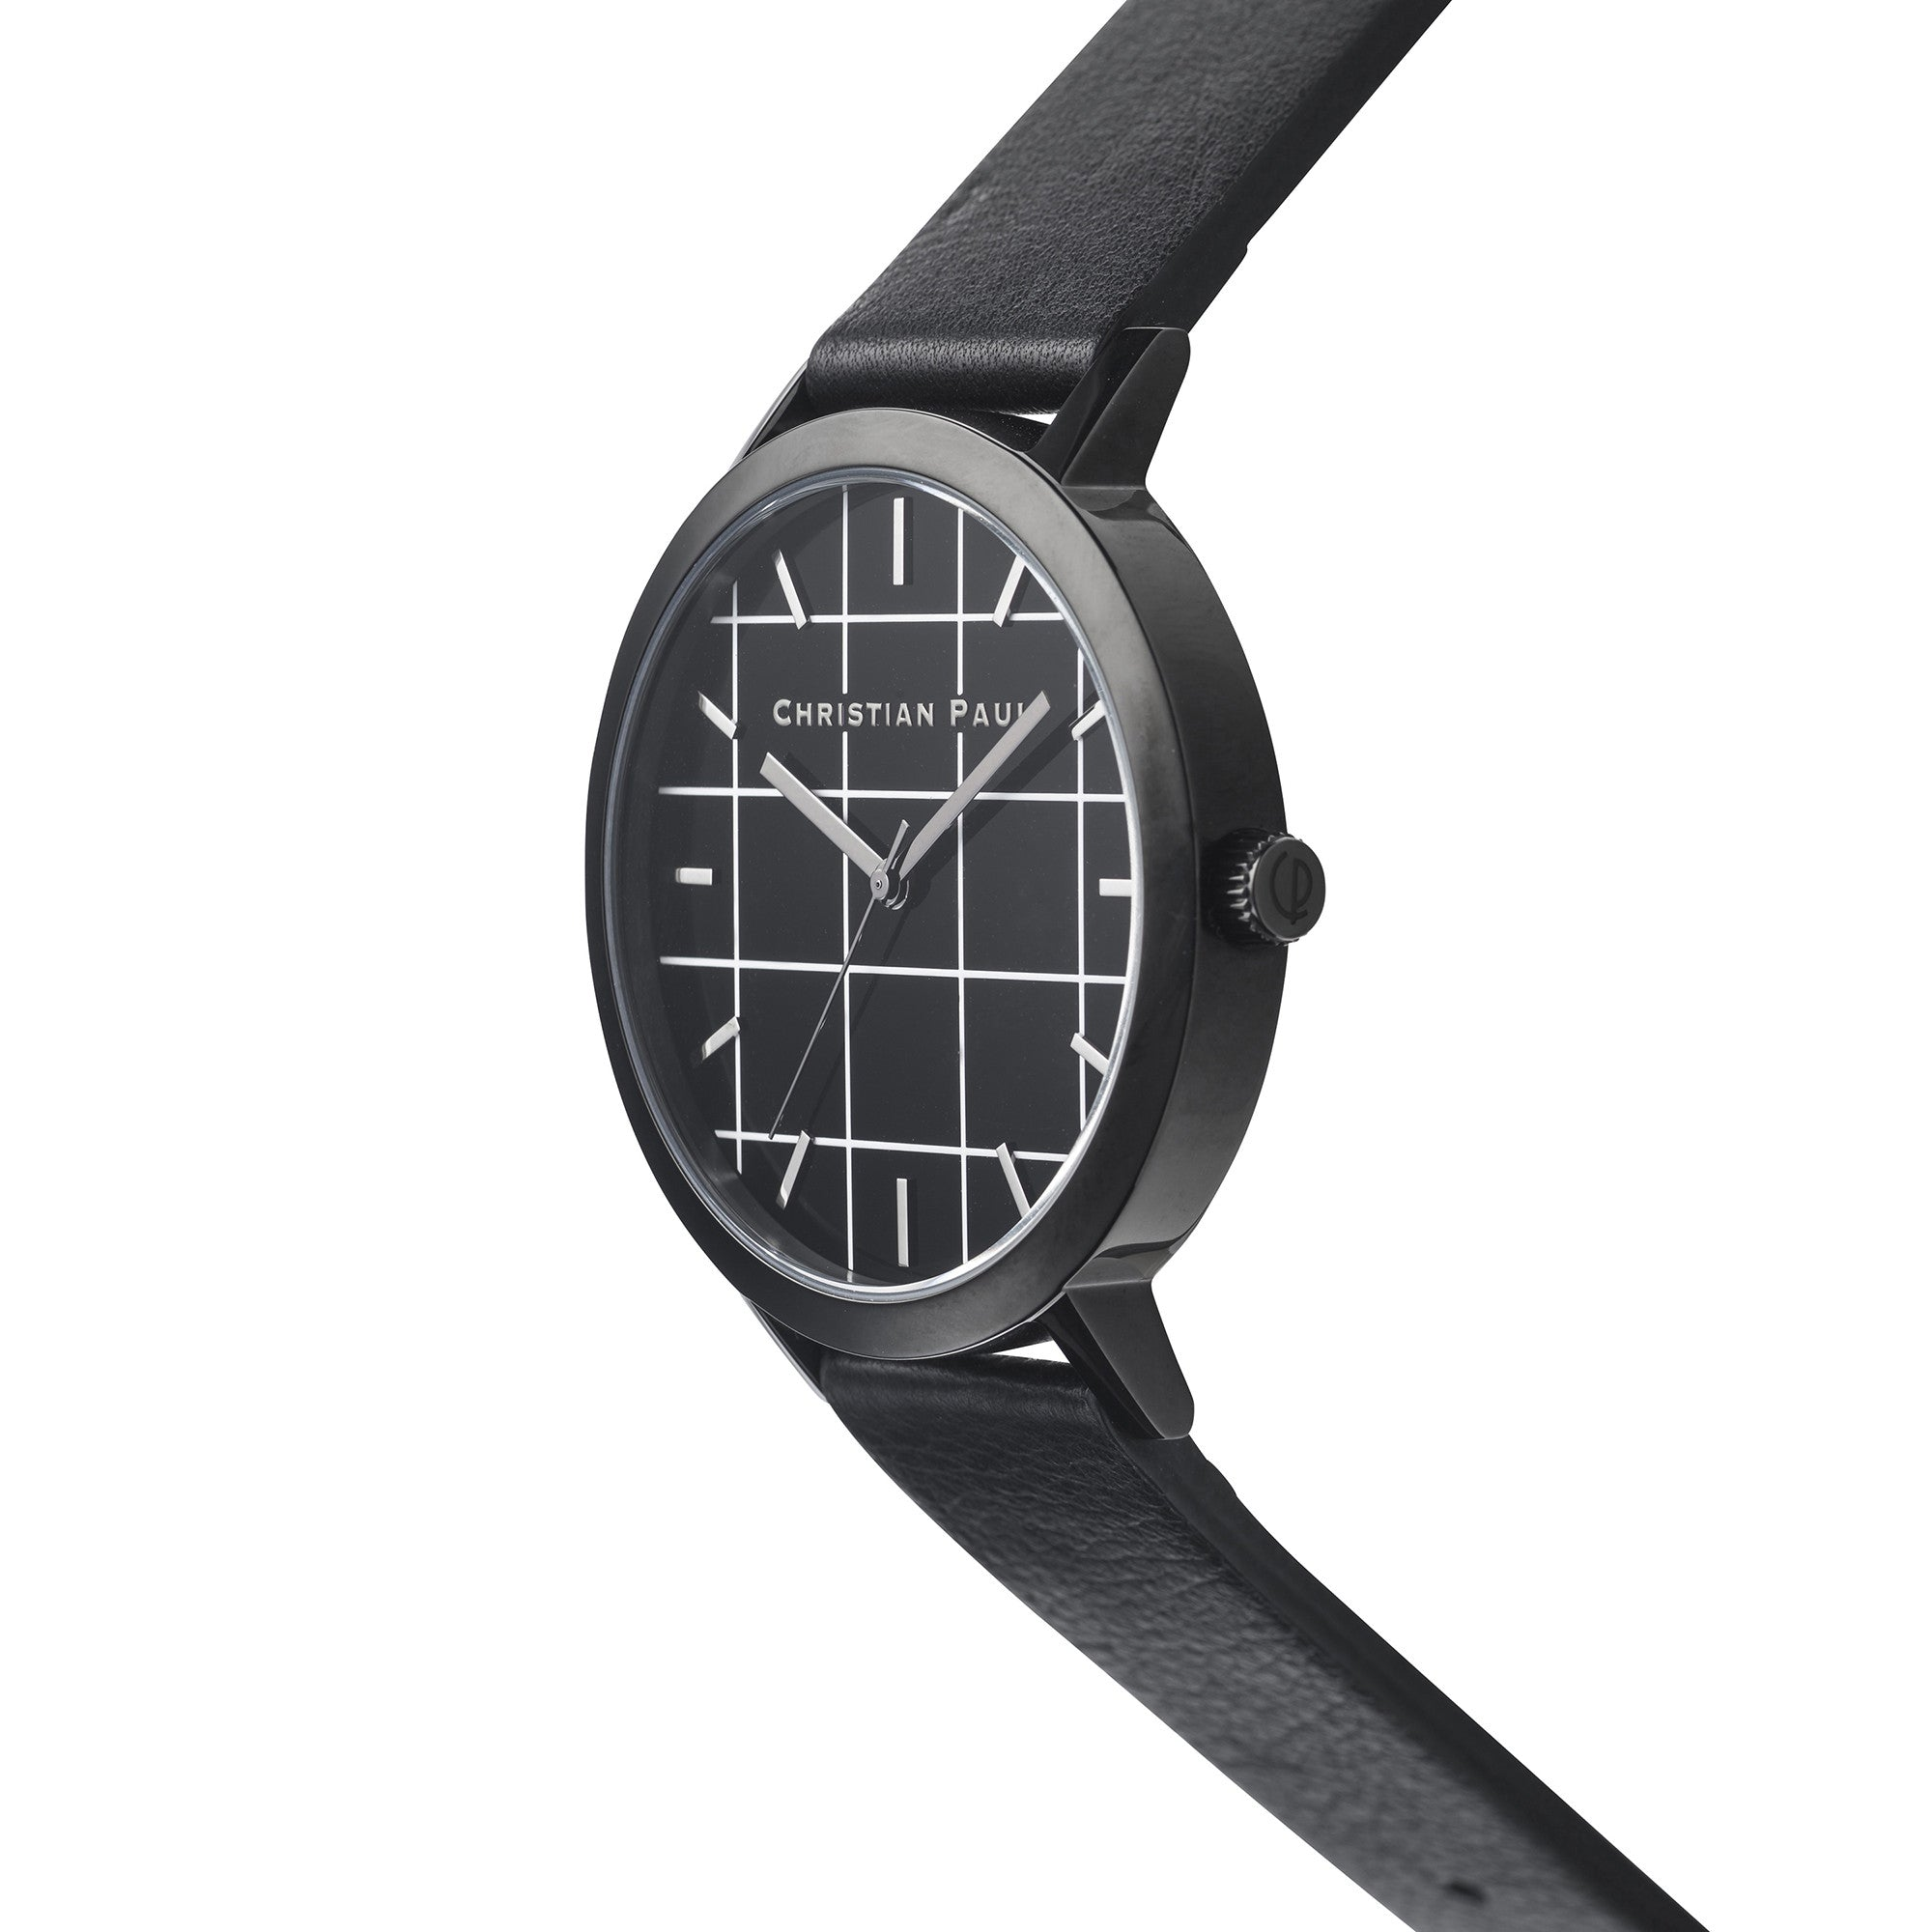 Christian Paul Watch The Strand Grid 43mm  / Black on Black